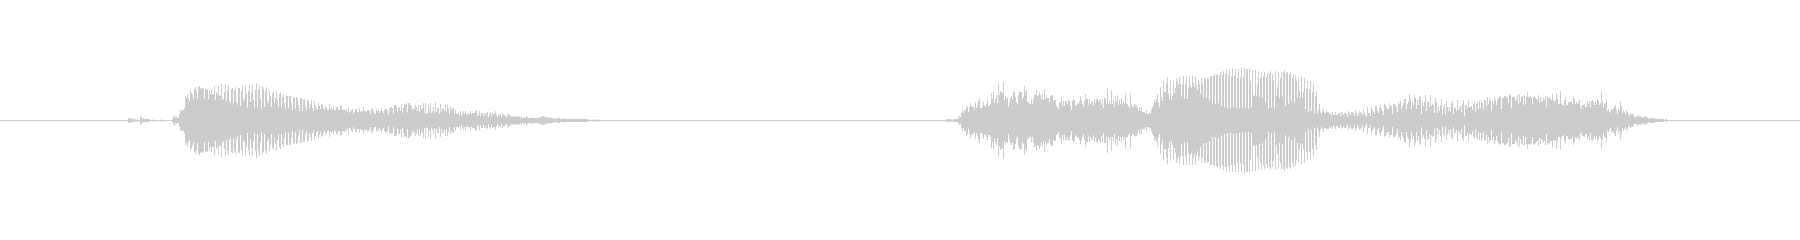 Oh yeah!'s unreproduced waveform